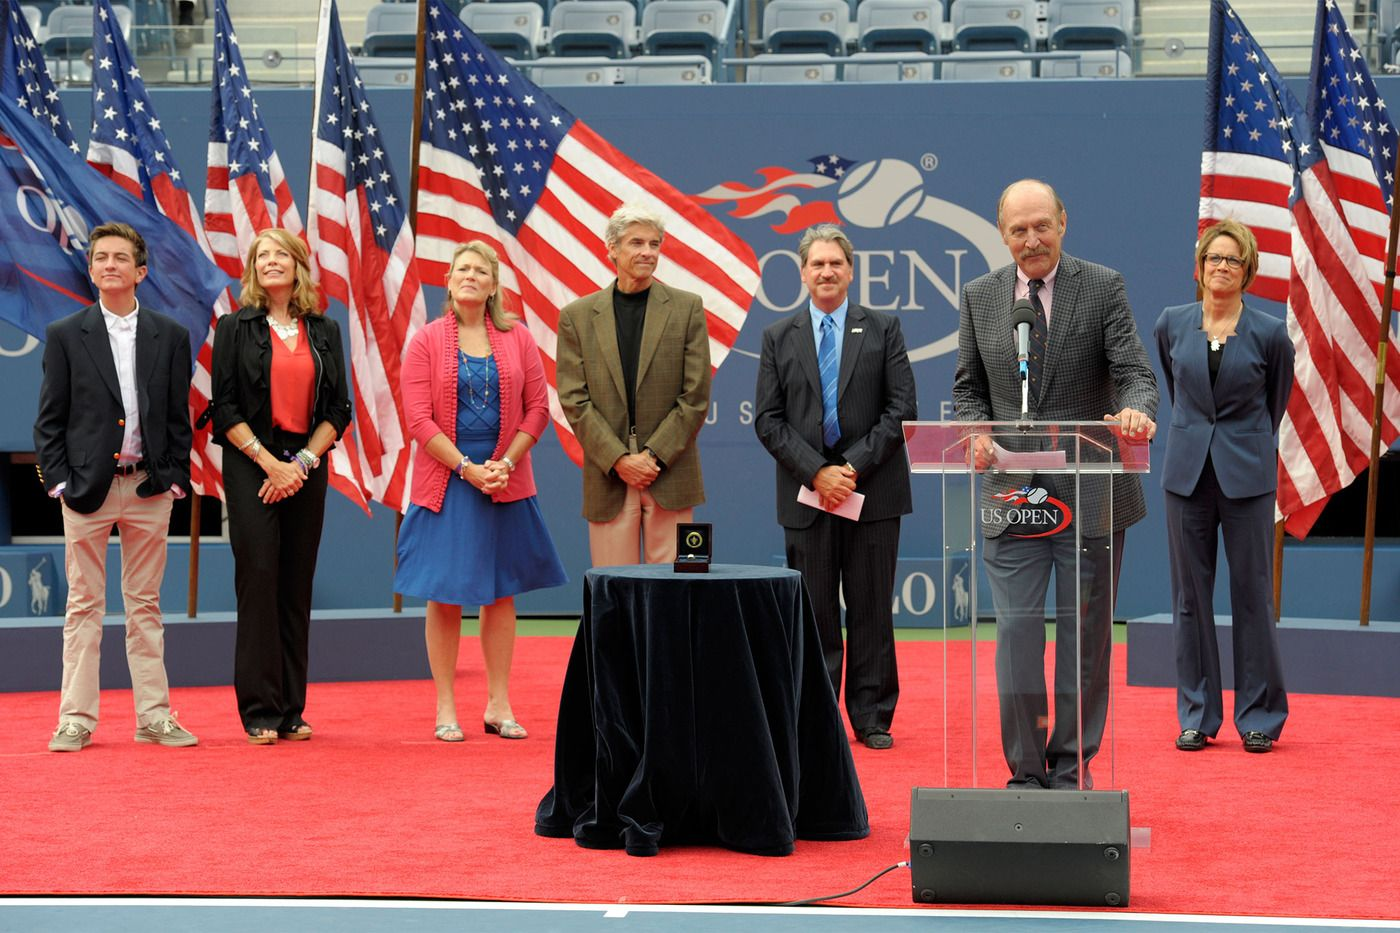 The family of Tony Trabert, as well as USTA President Dave